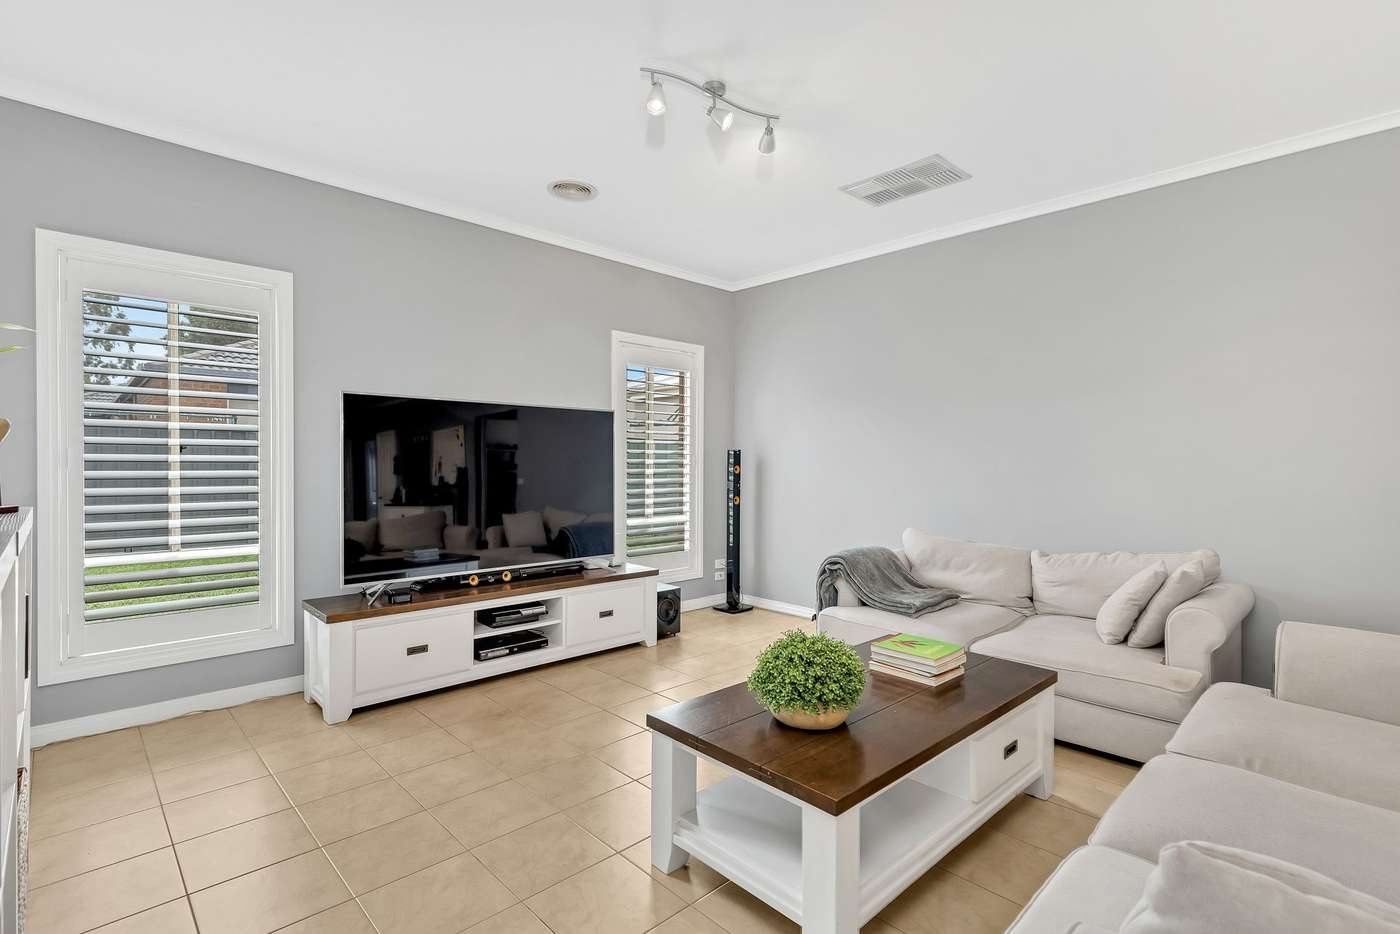 Sixth view of Homely house listing, 44 Eppalock Drive, Manor Lakes VIC 3024